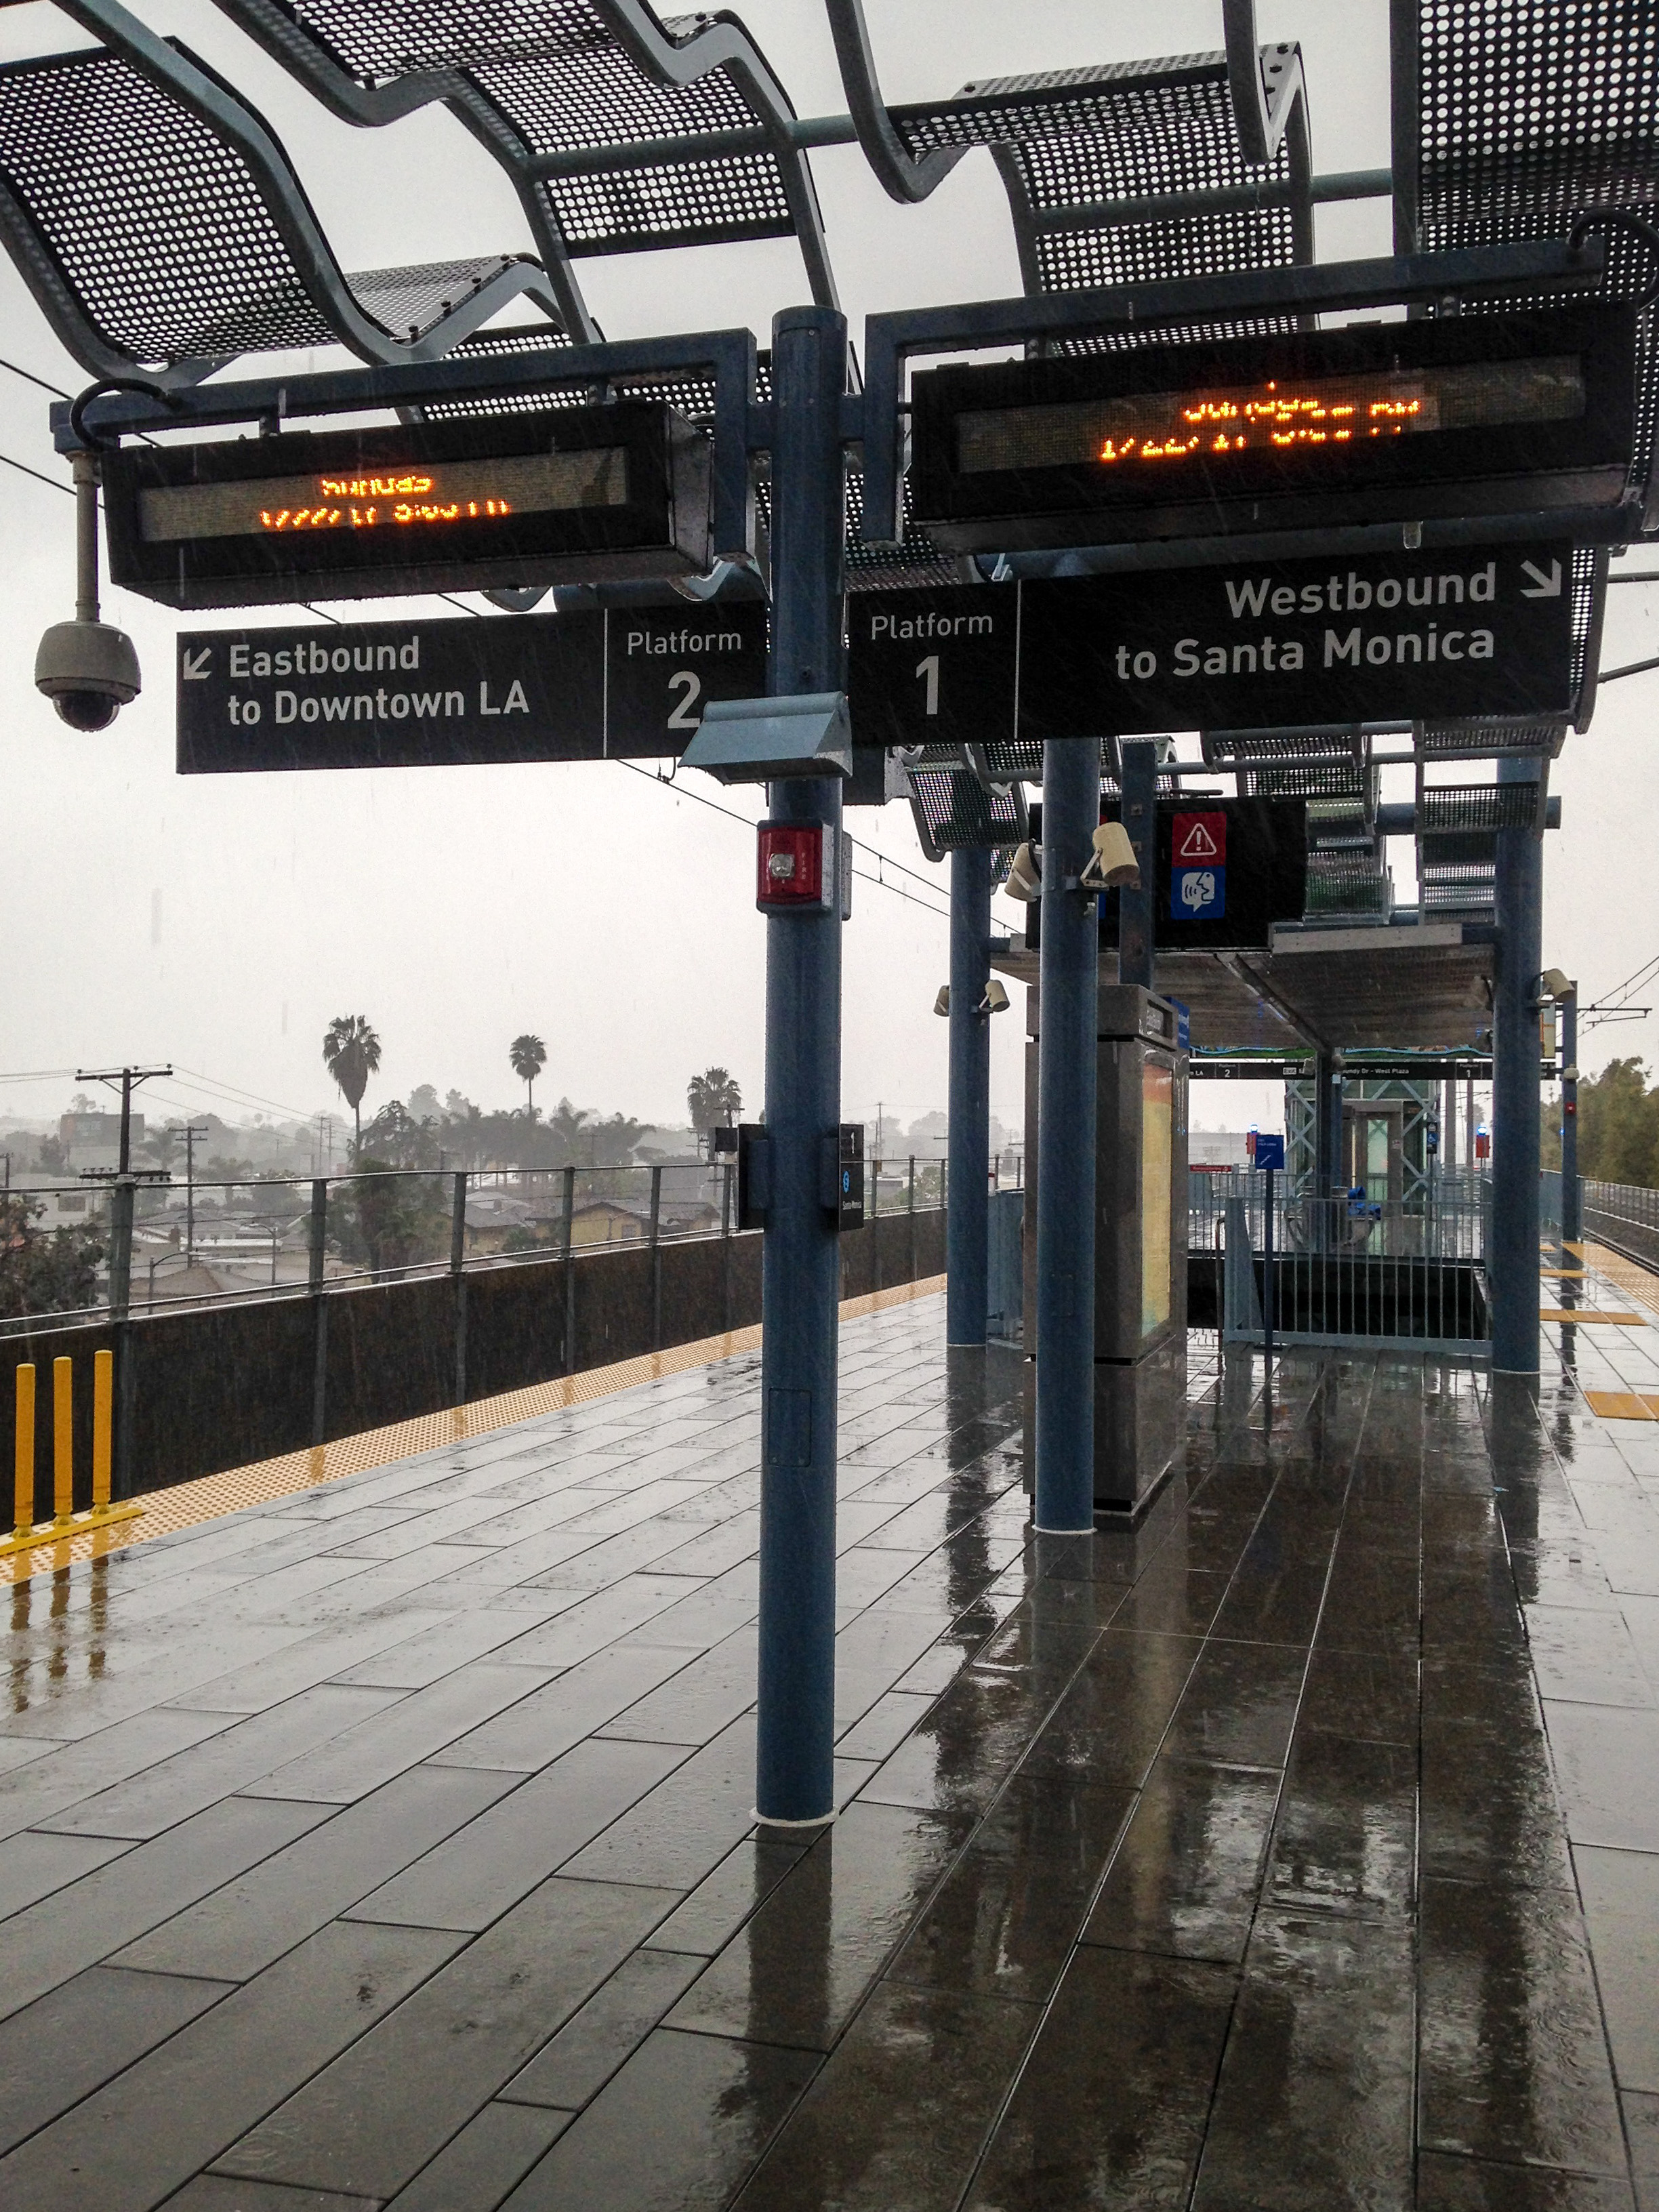 Finally getting to ride the Expo Line Metro from Downtown LA to Santa Monica in heavy downpour. Two very strange things I wish I could have experienced more of when I actually lived in LA.